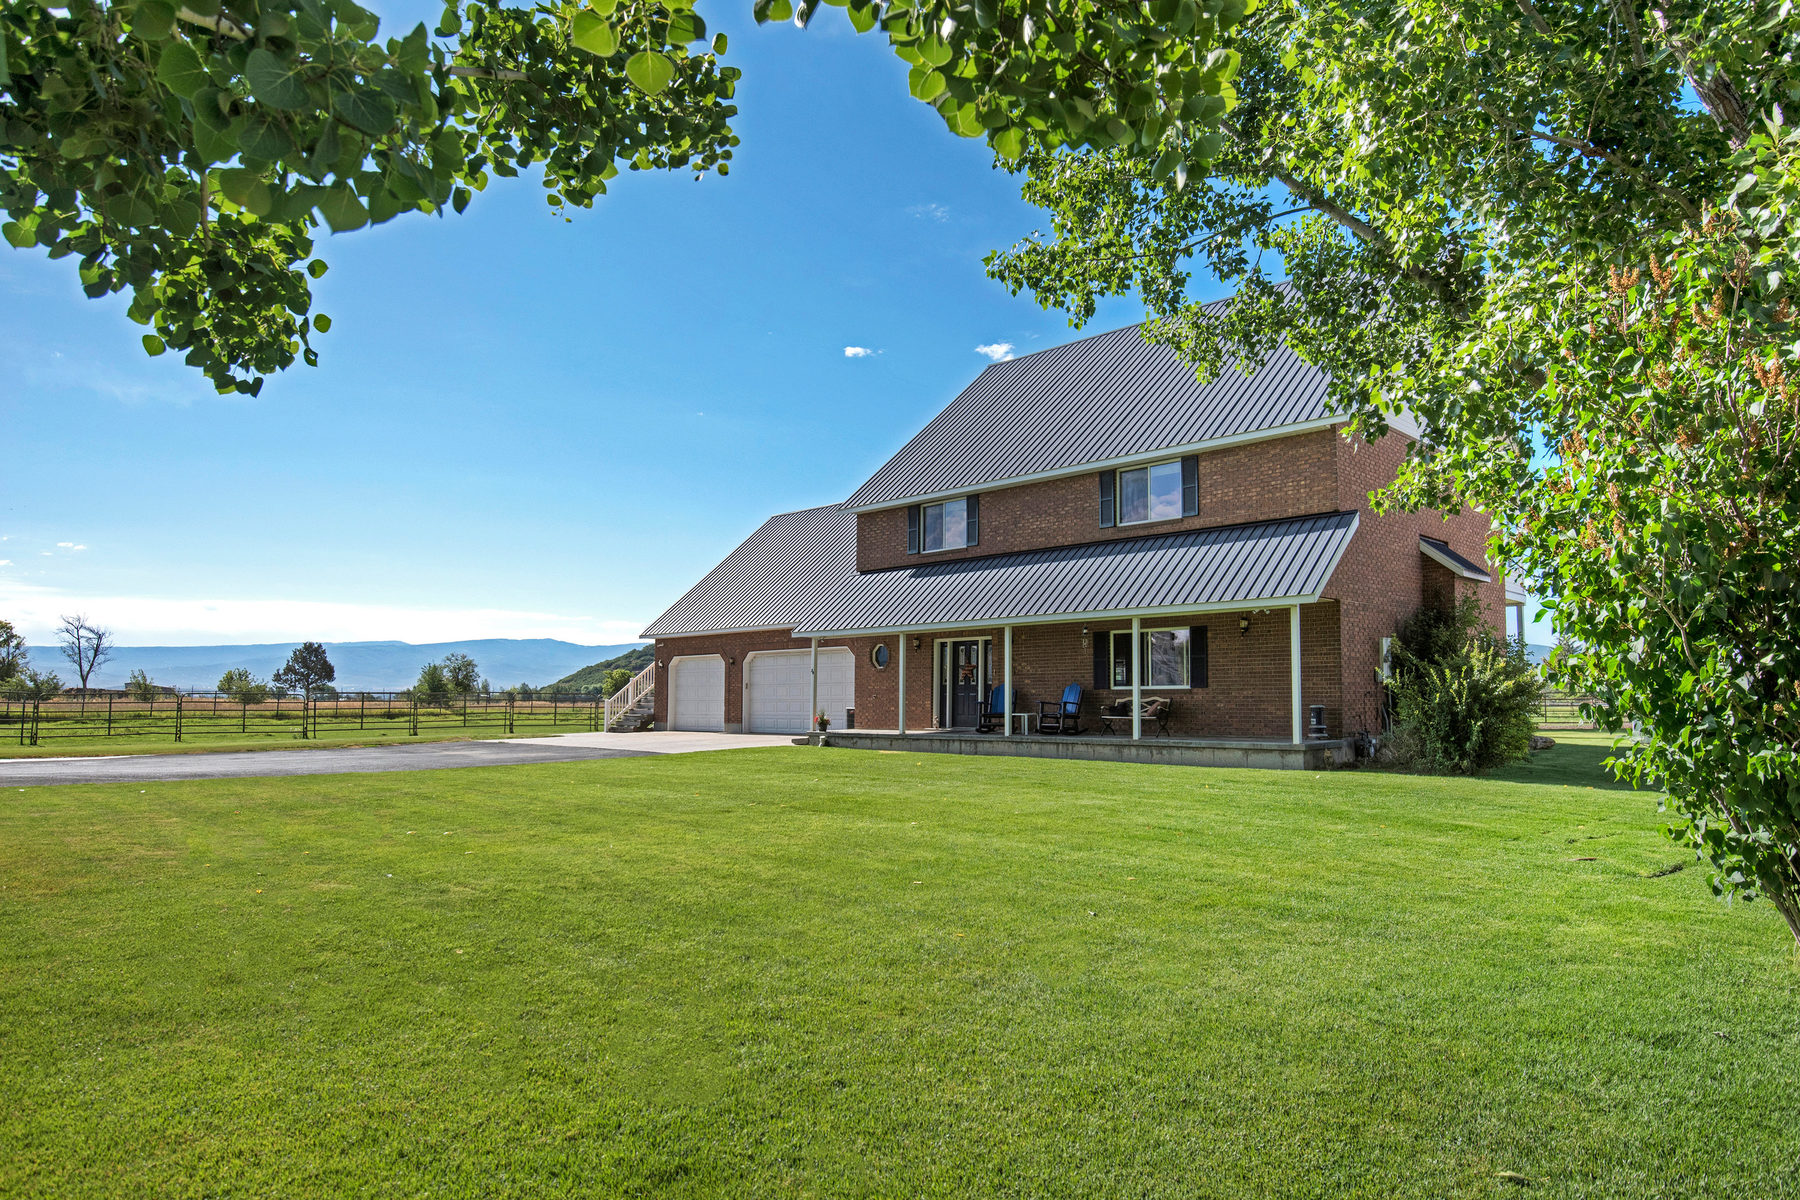 Single Family Home for Sale at Rare 4 Acre Horse Property in the Heart of Midway 84 East 600 North Midway, Utah, 84049 United States